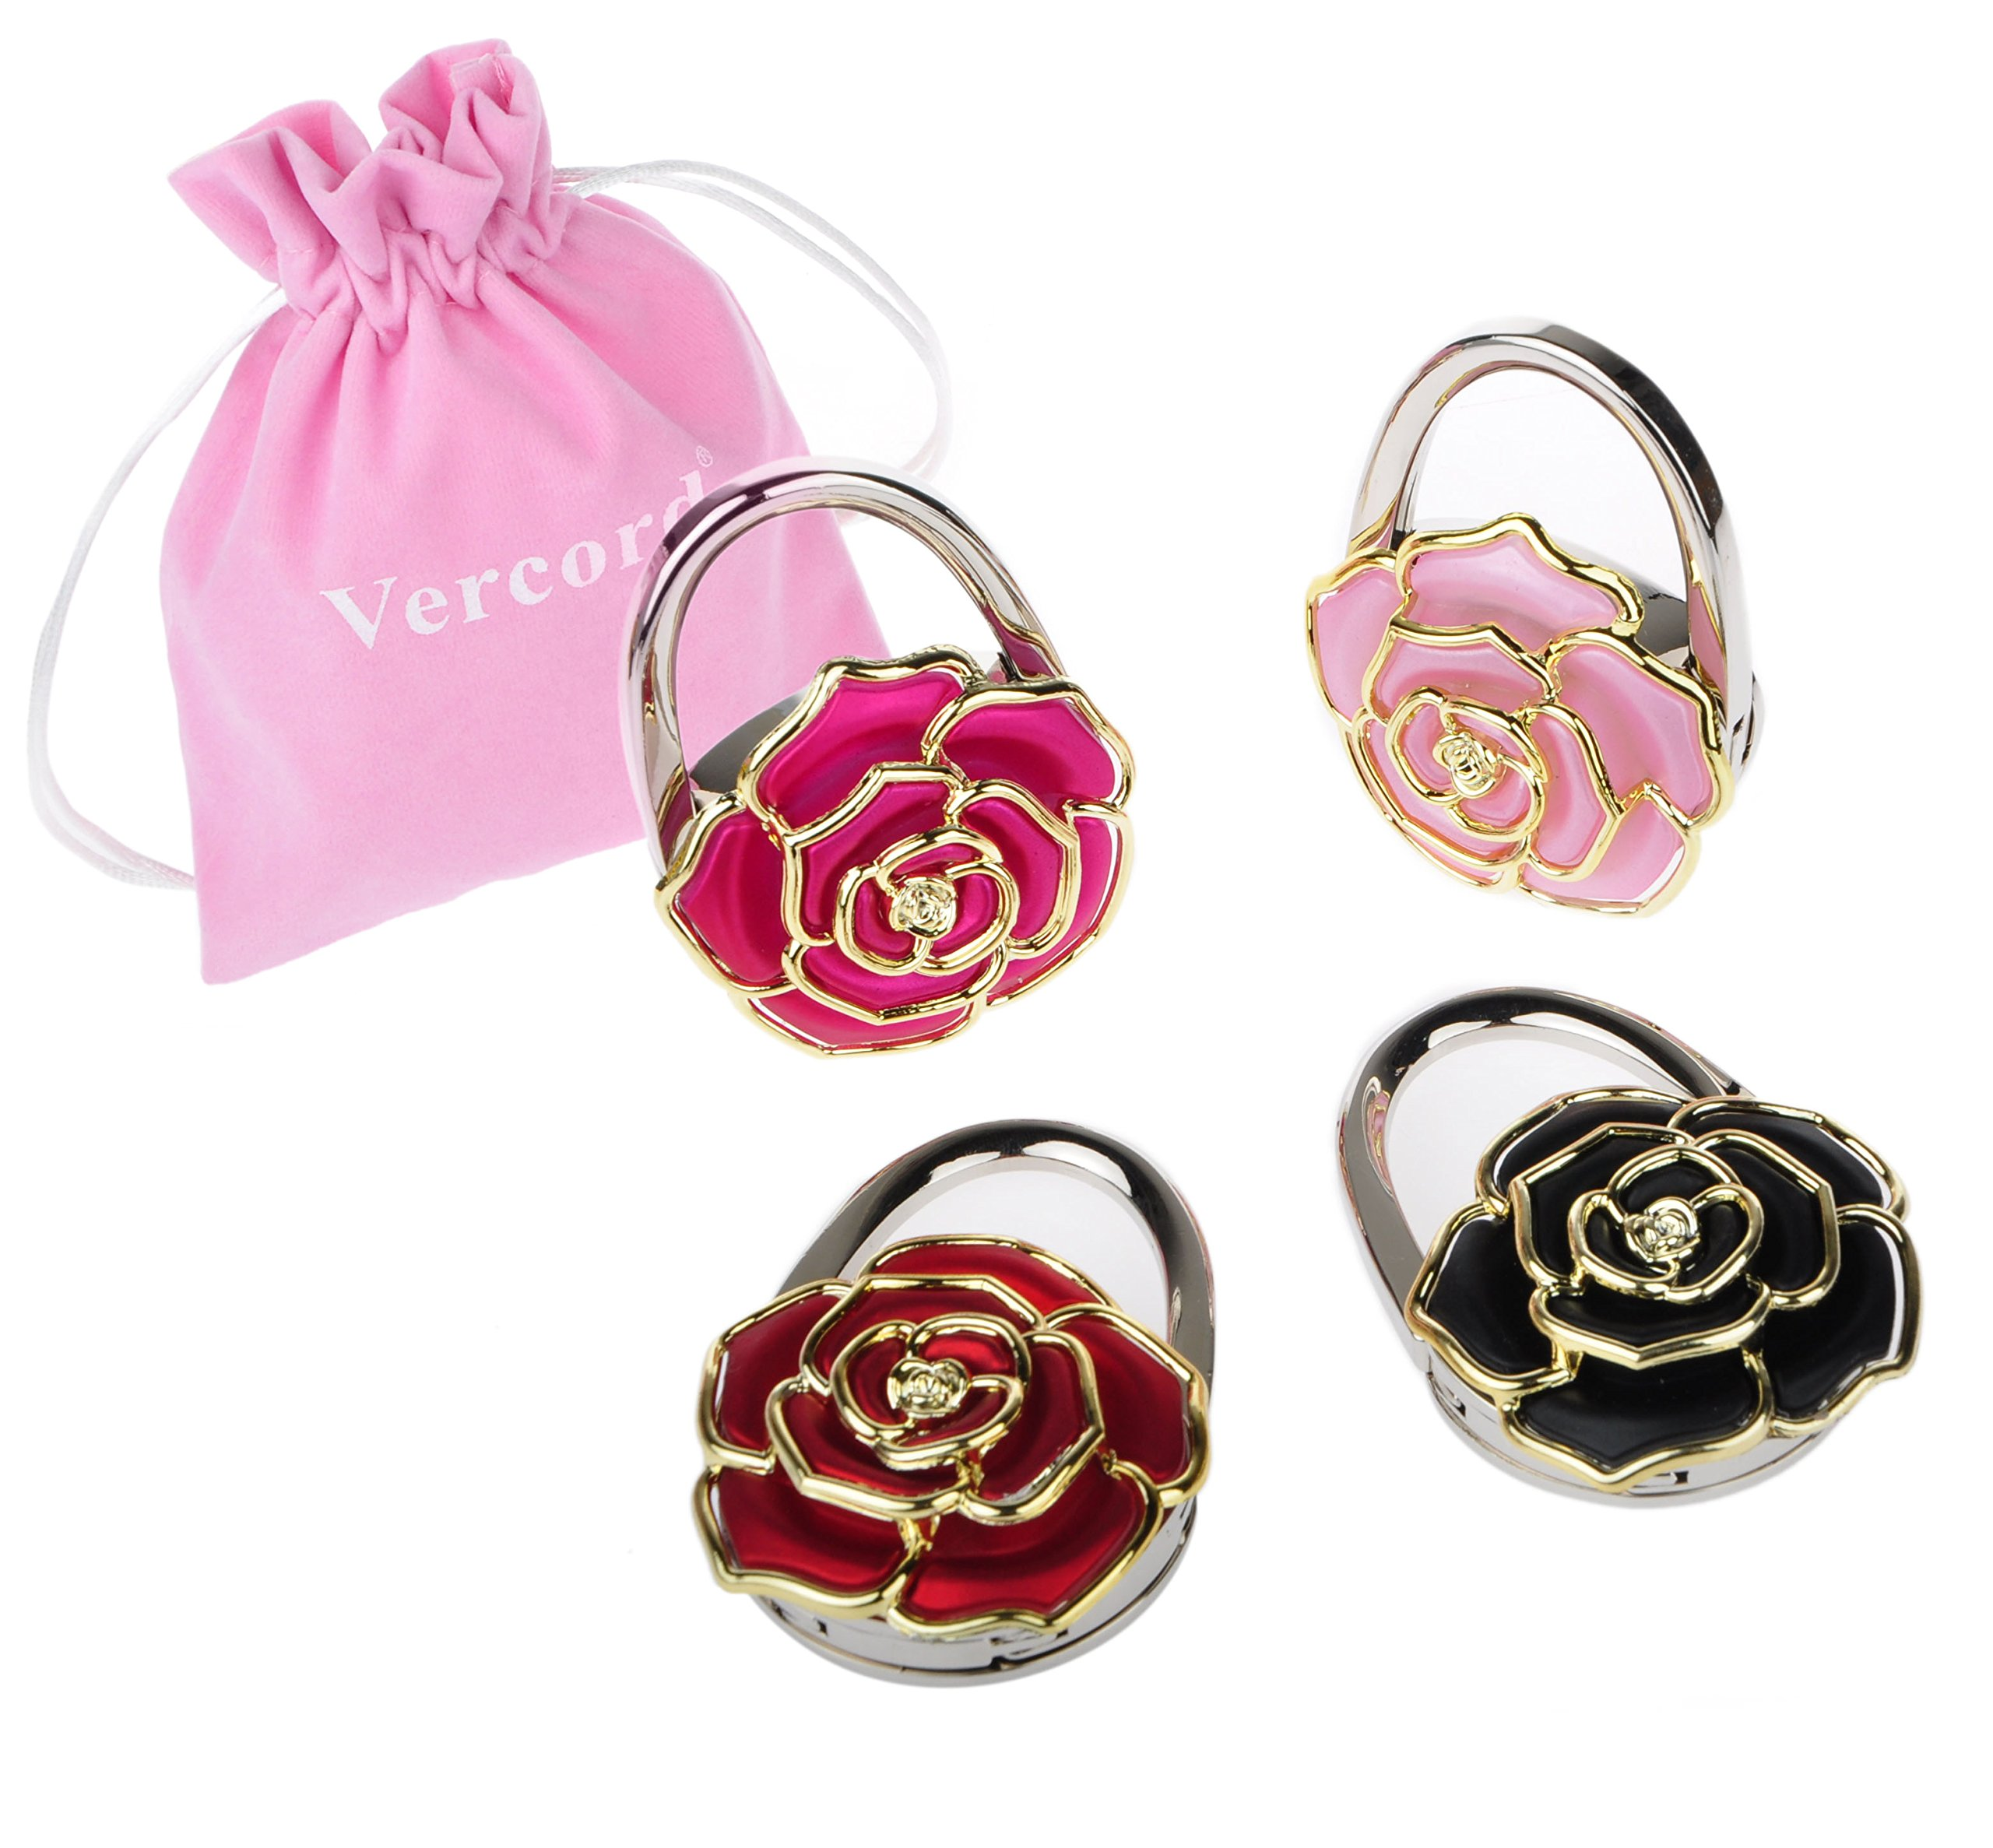 Vercord 4 Pack Rose Theme Foldable Instant Bag Handbag Purse Hangers Hooks, Flowers#8